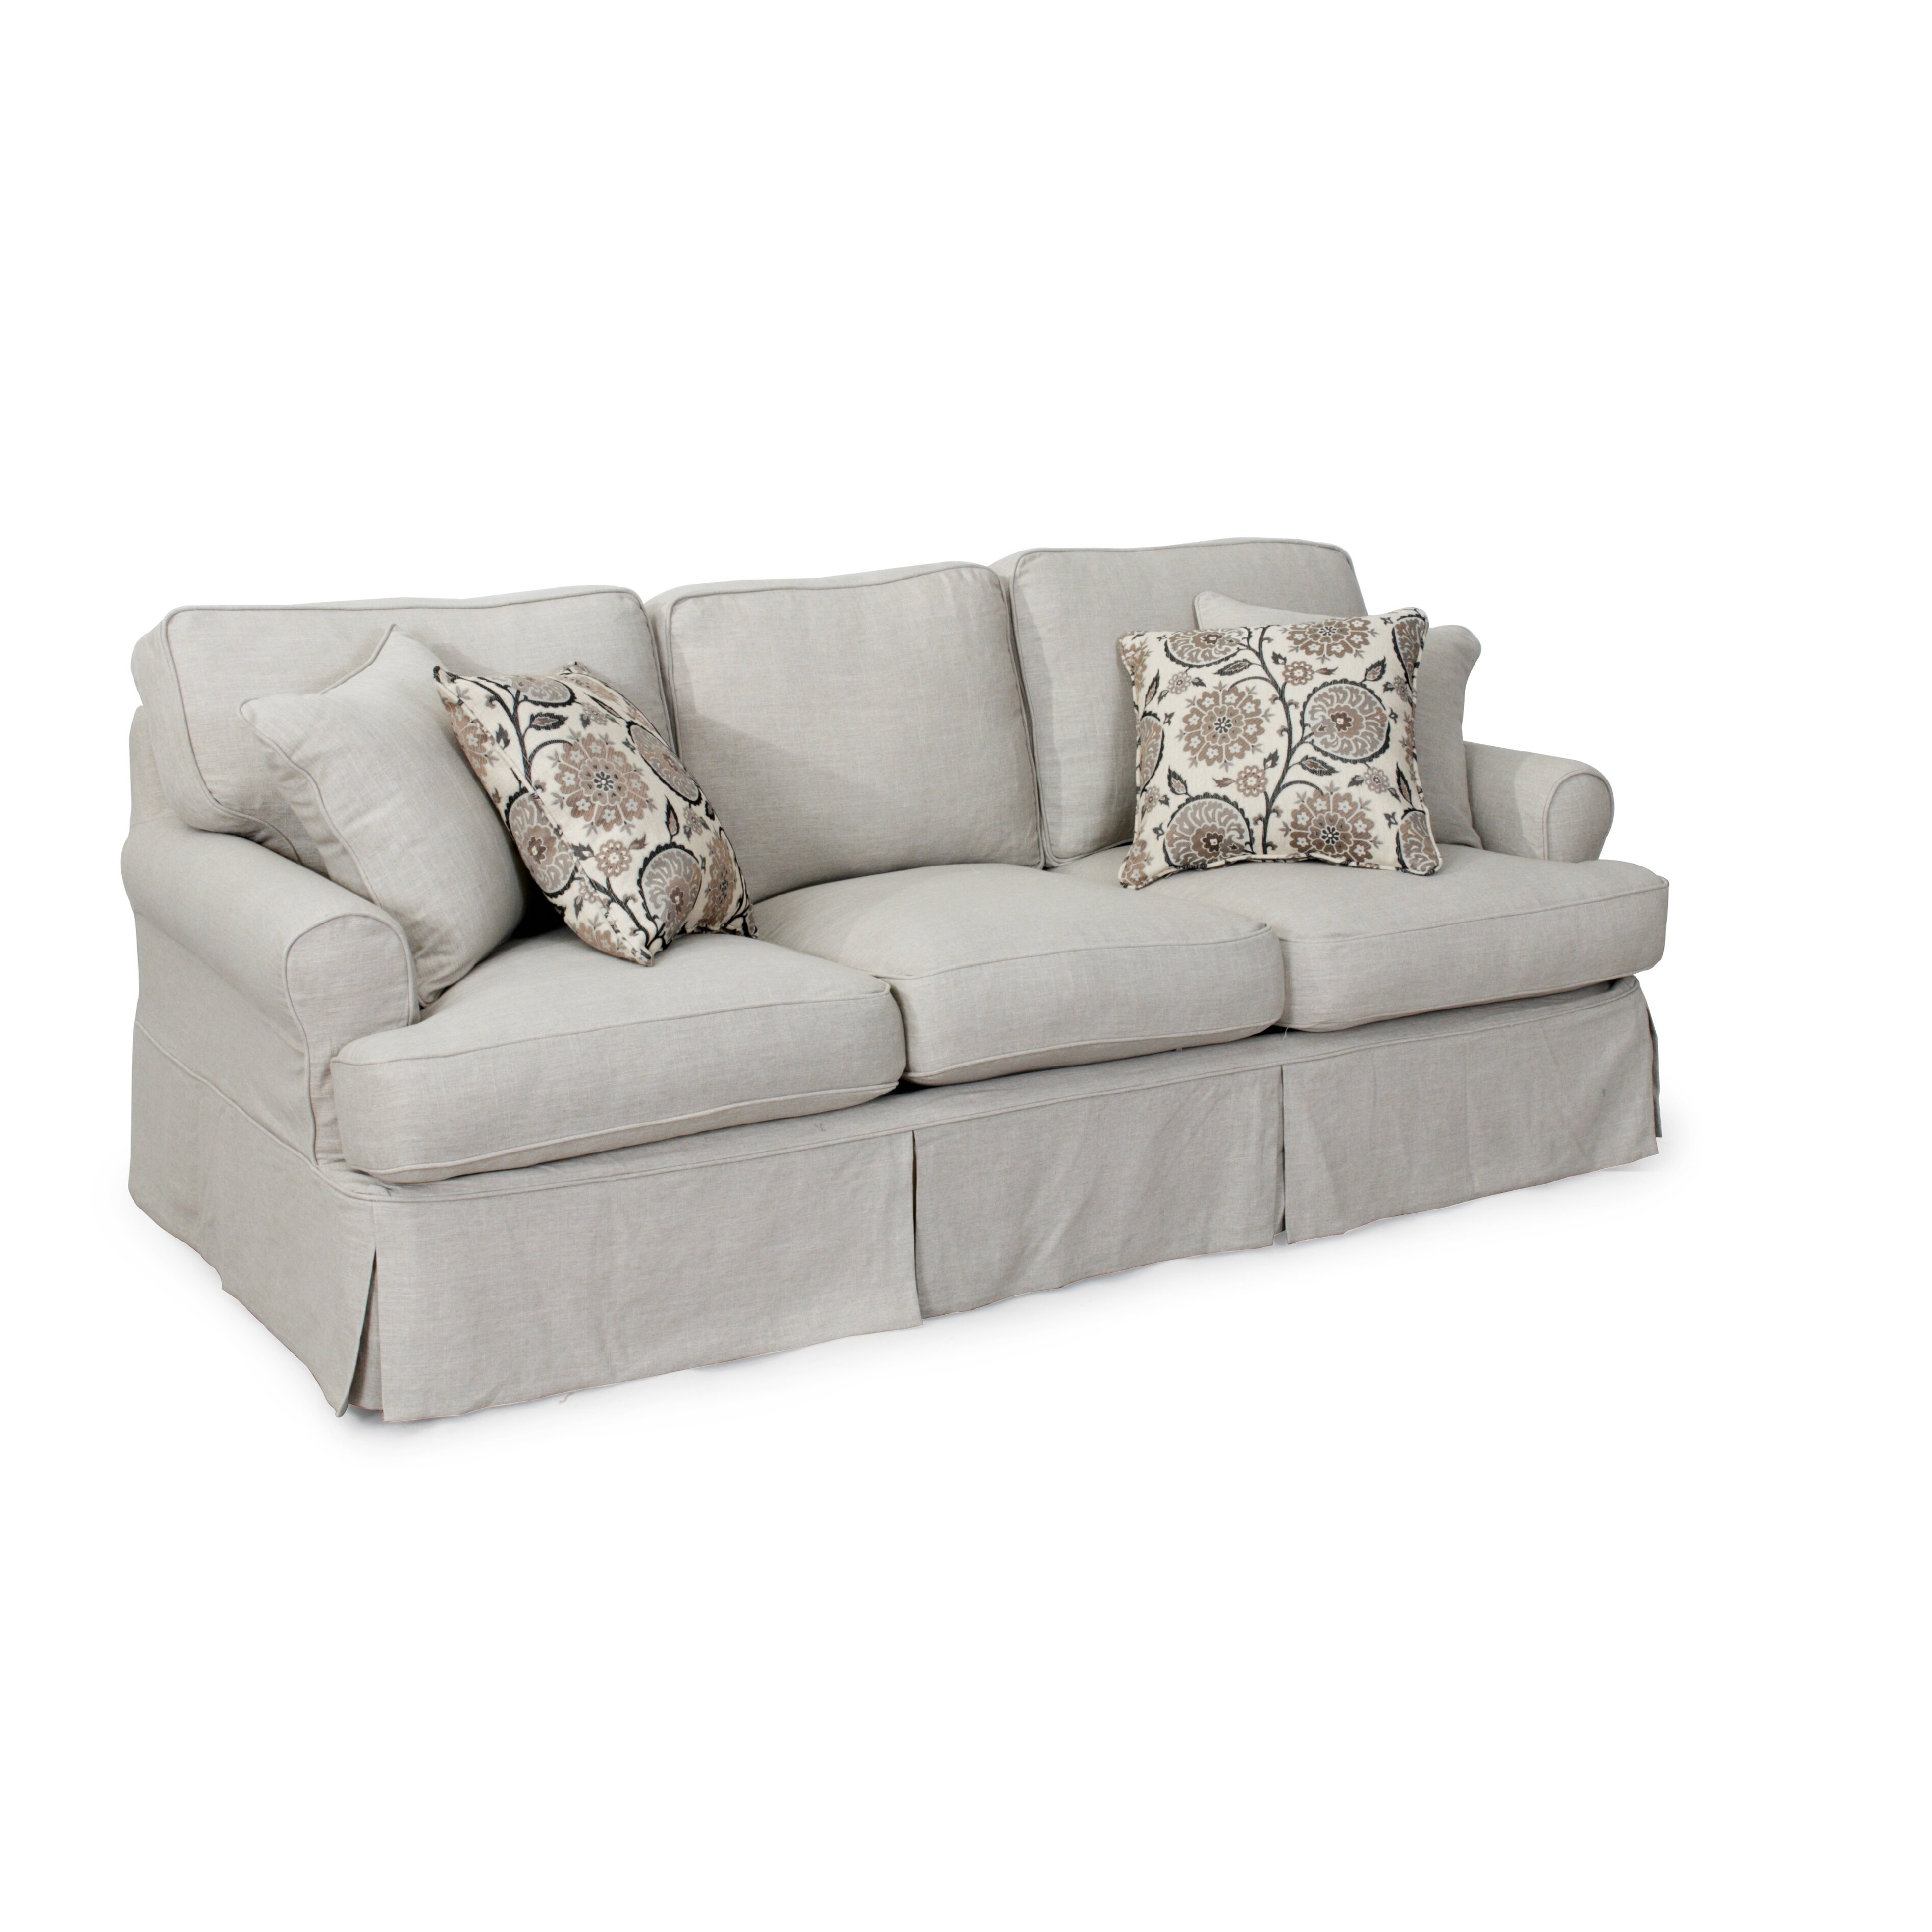 Three Cushion Sofa Slipcover Bedroom More Sonoma 3 Cushion Slip